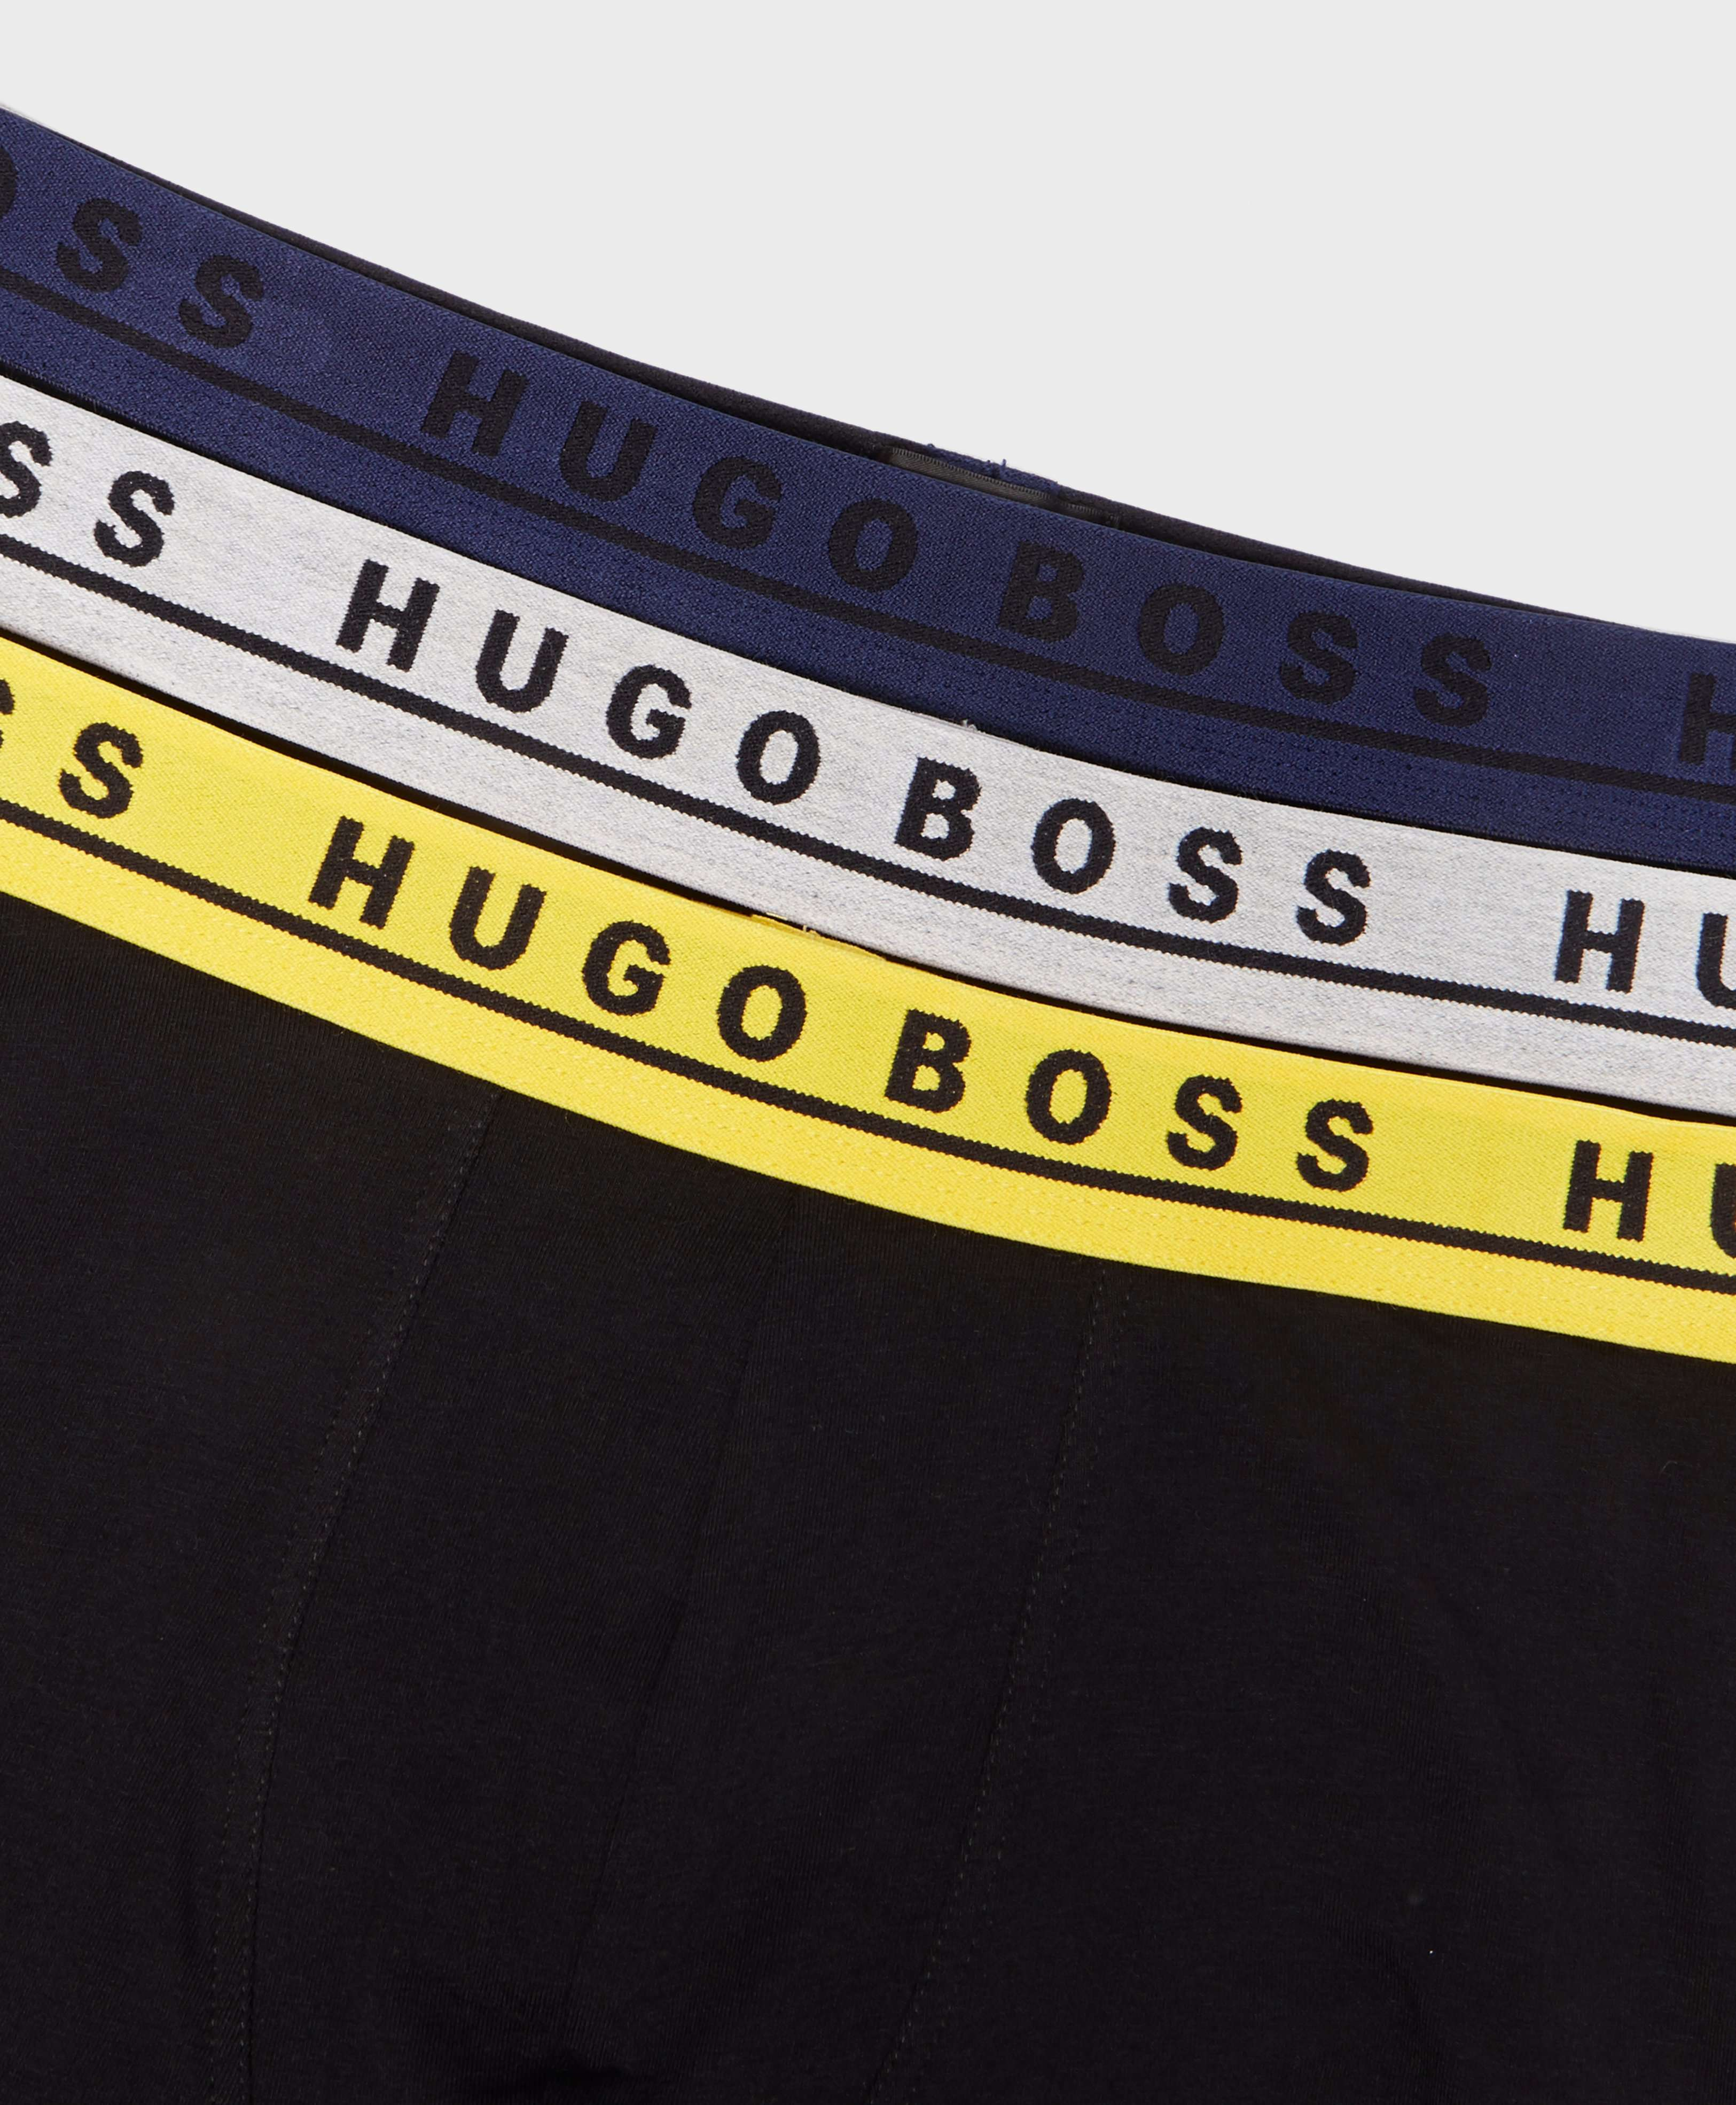 BOSS 3-Pack Boxer Shorts